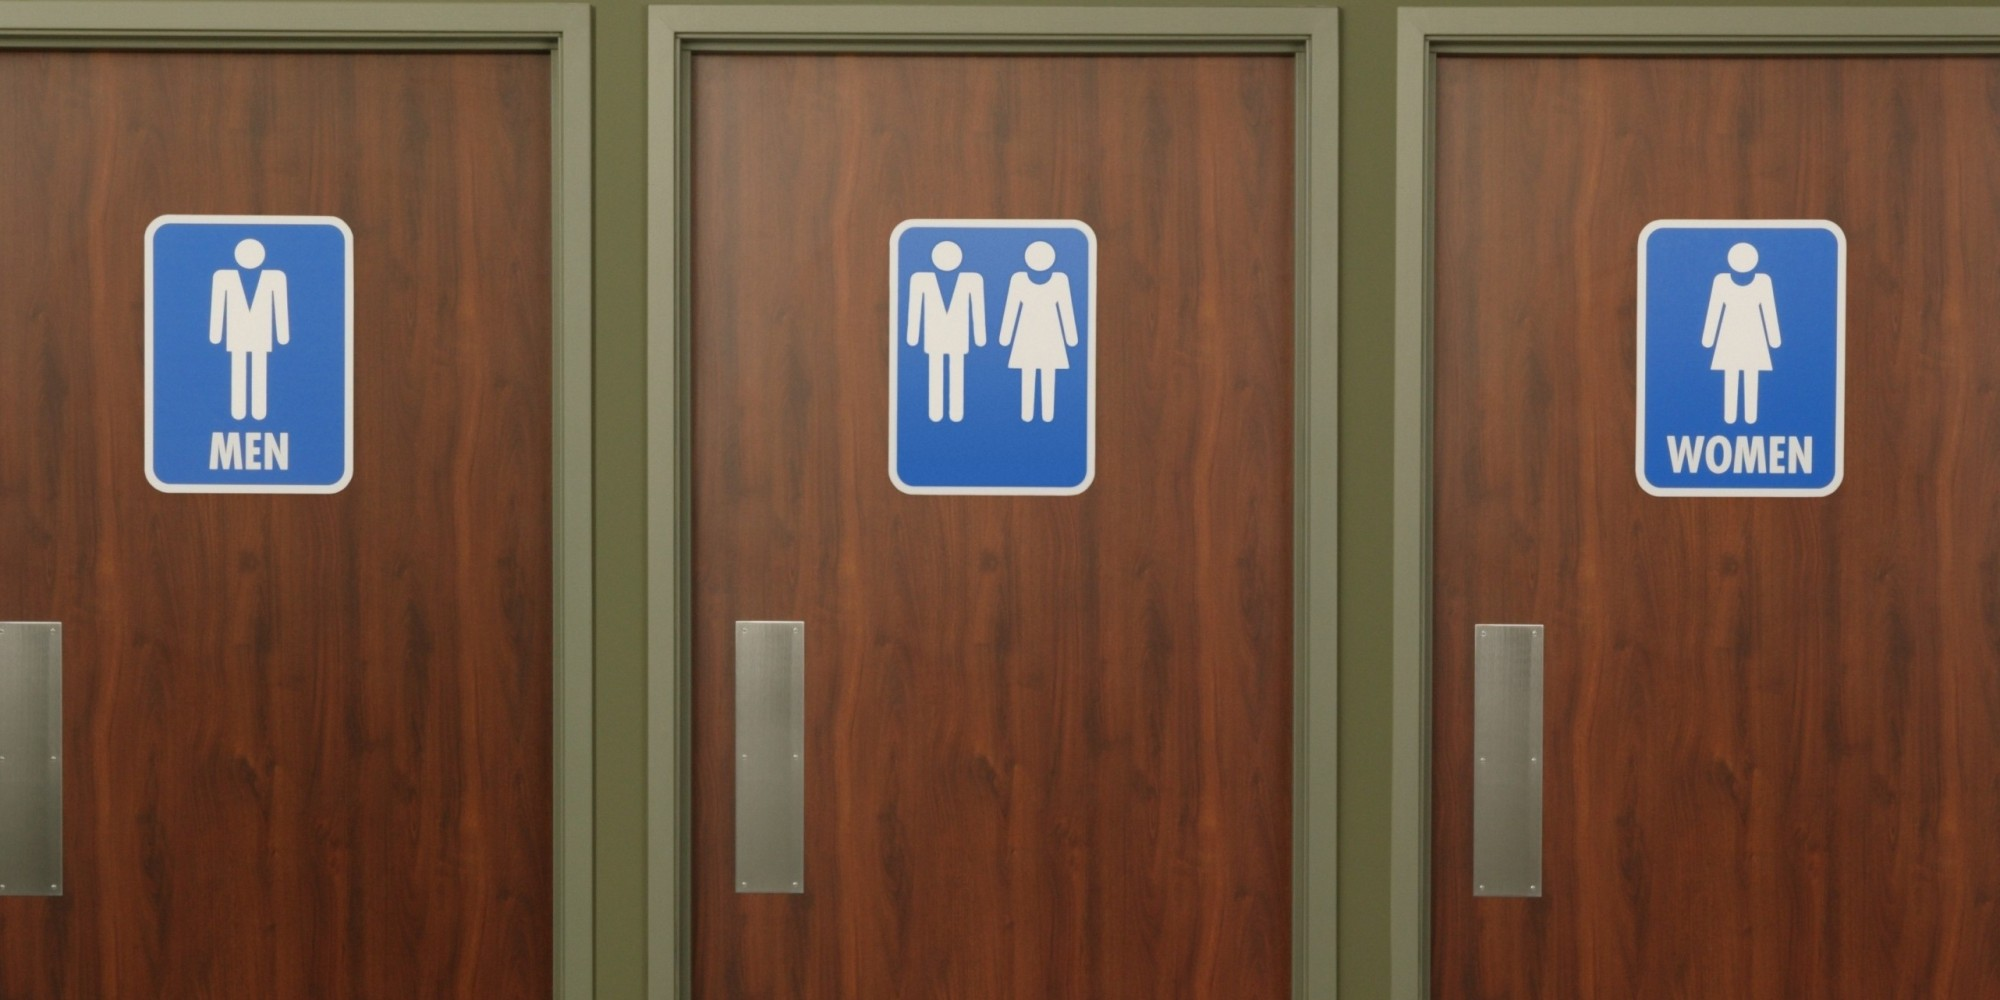 Transgender Rights and Public Bathrooms